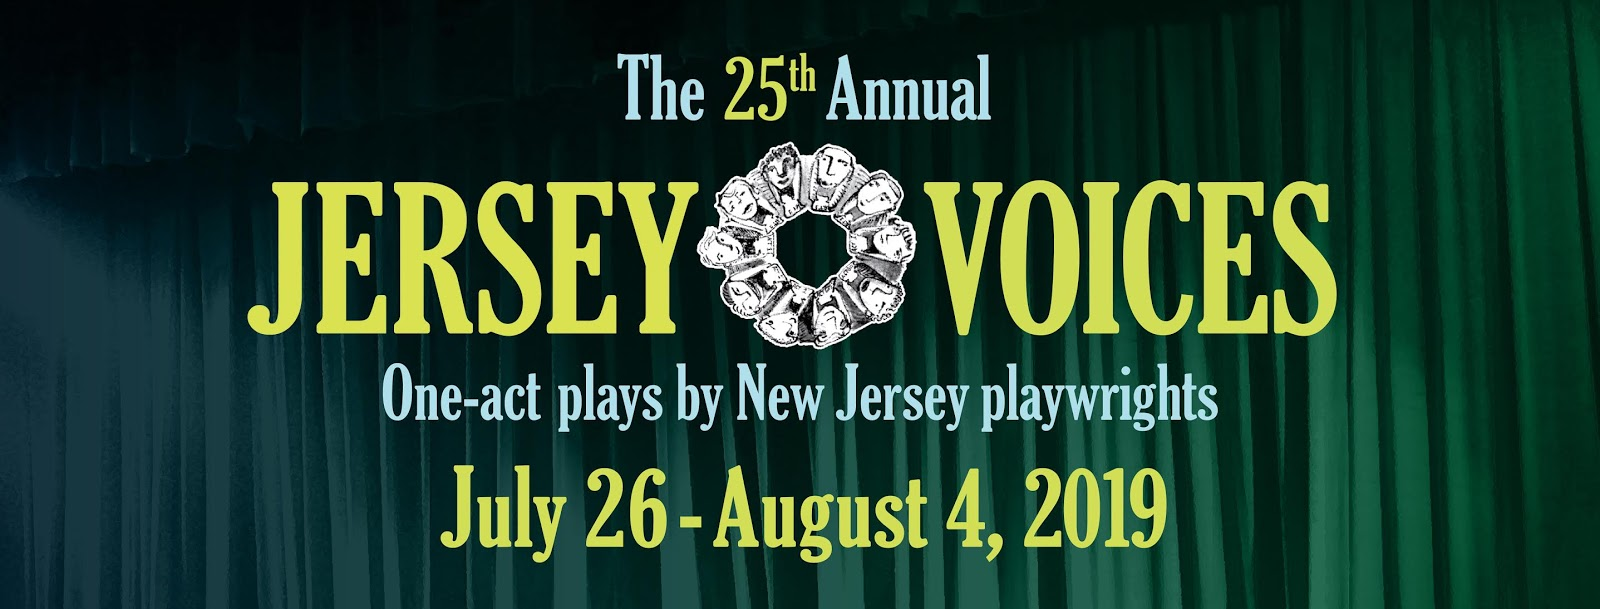 New Jersey Footlights: Chatham Playhouse to Host 25th Annual